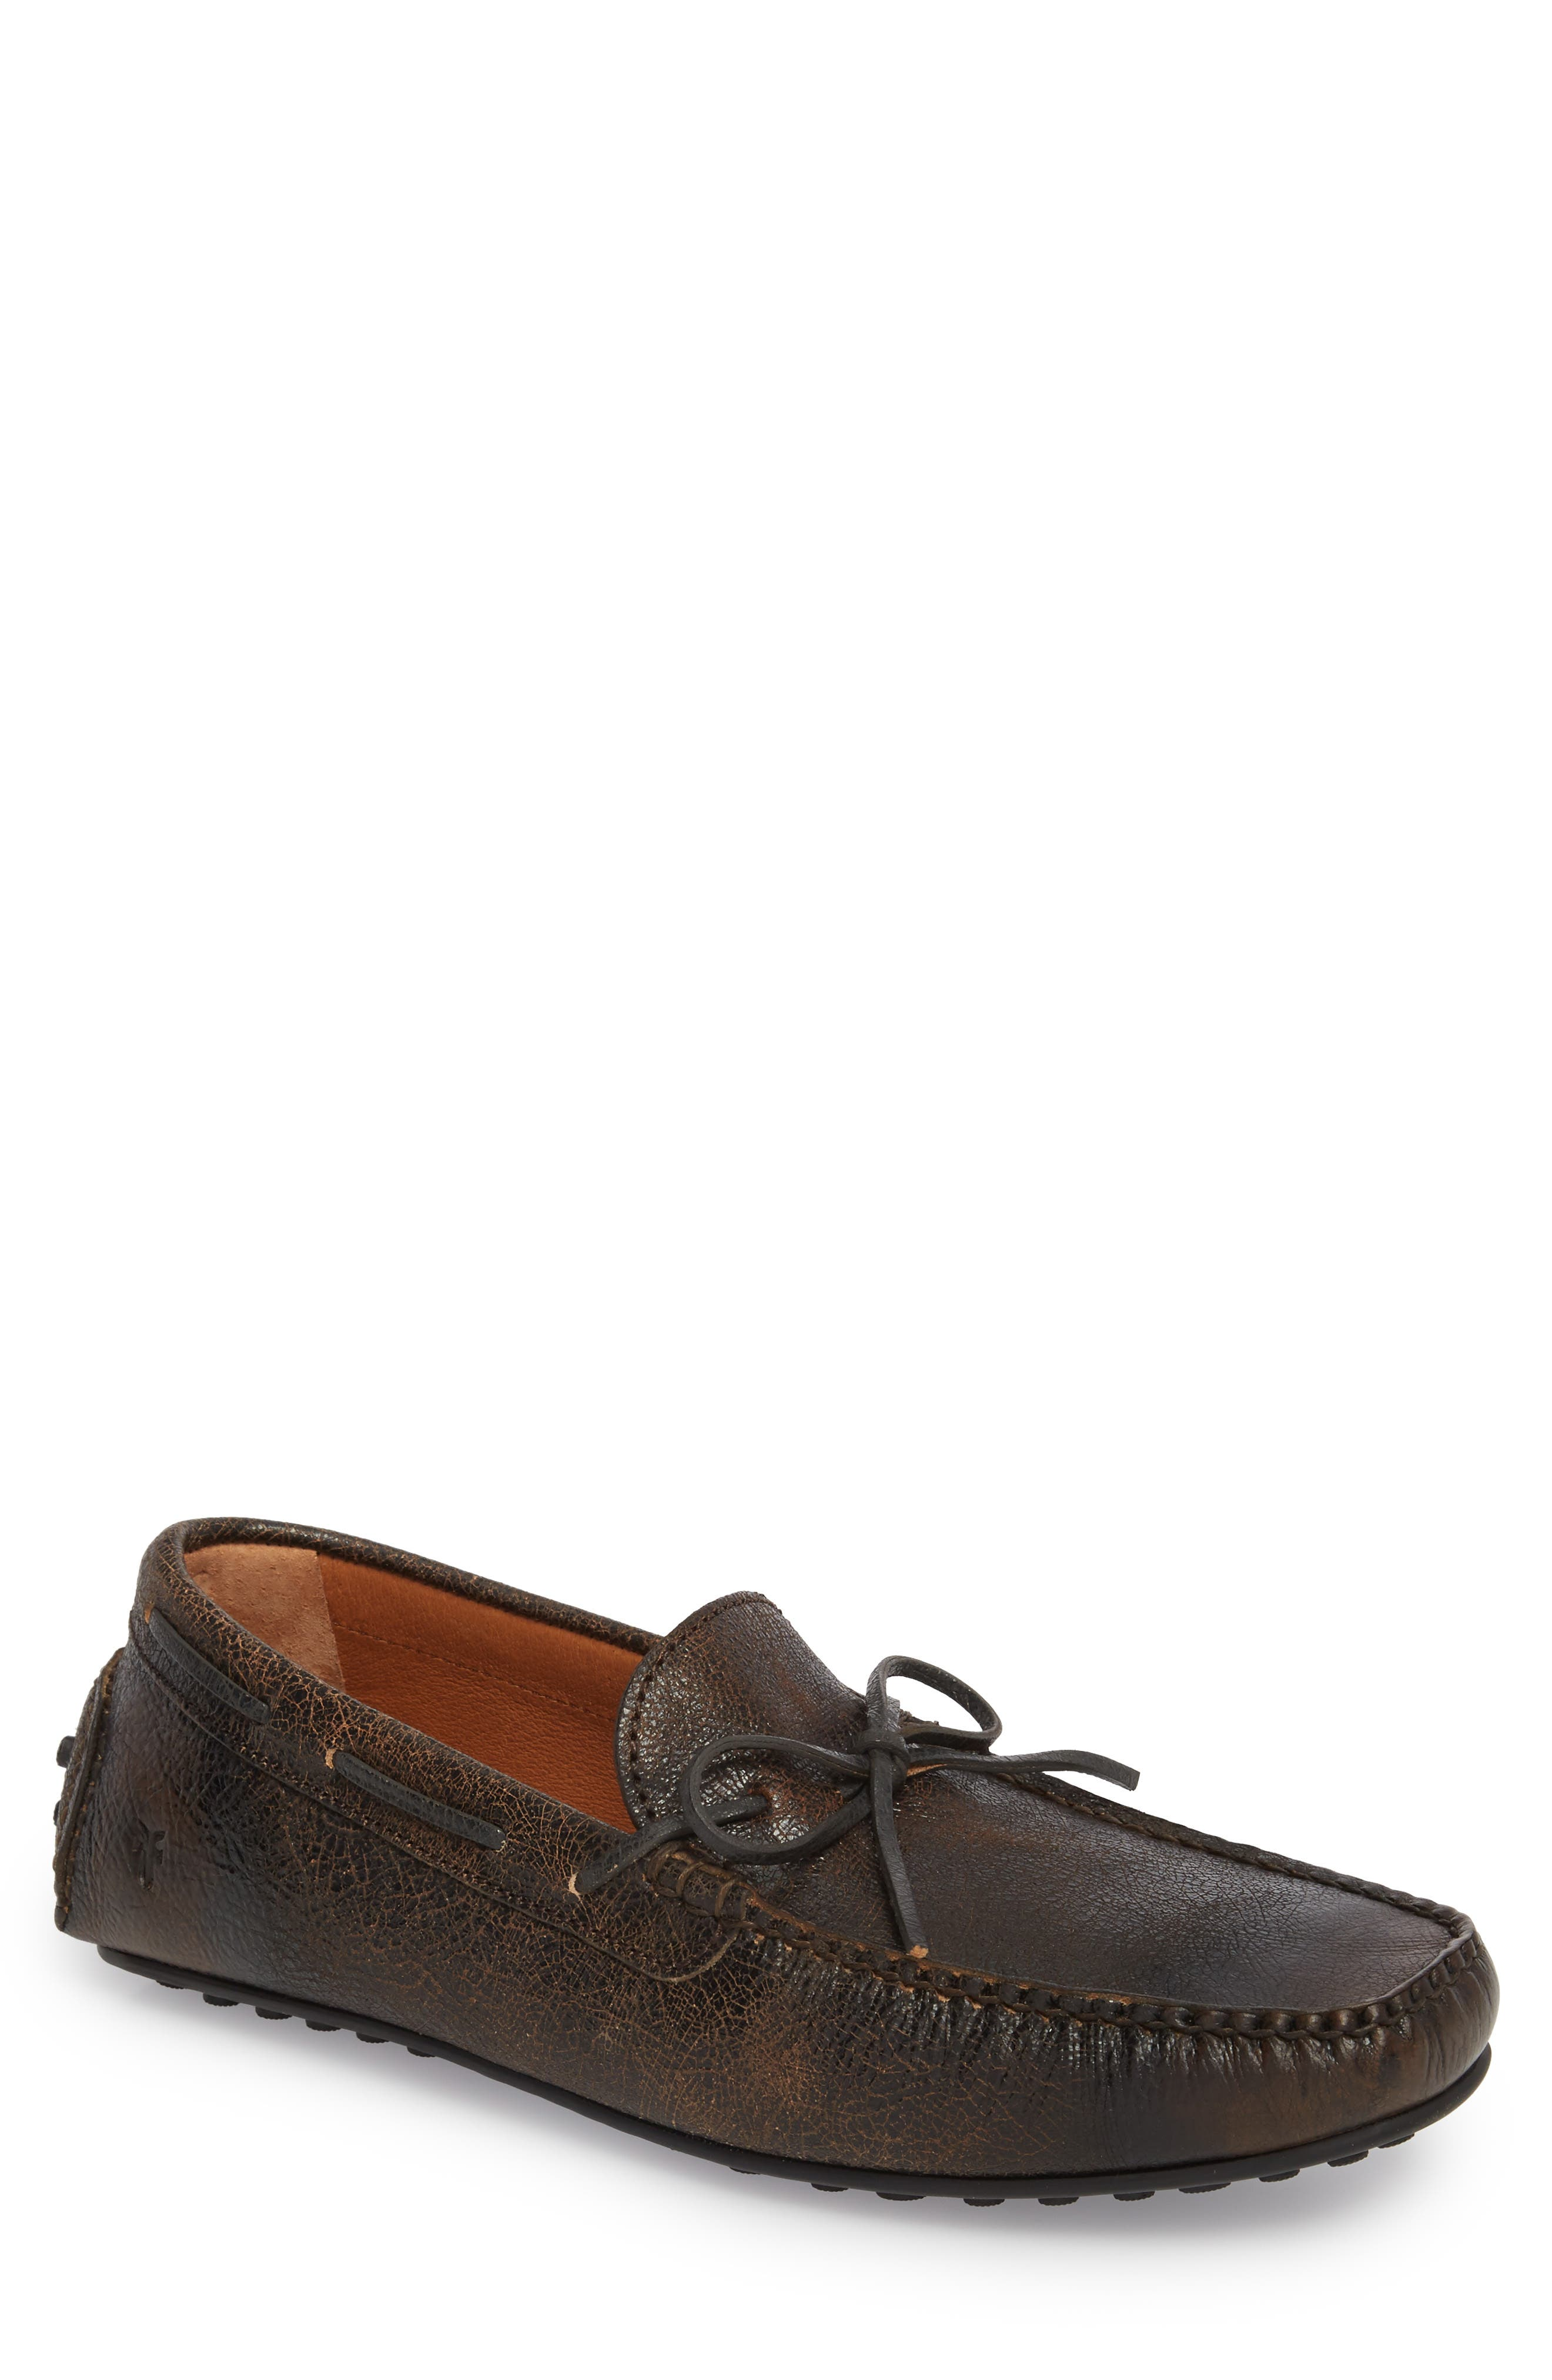 Allen Loafer,                         Main,                         color, 200